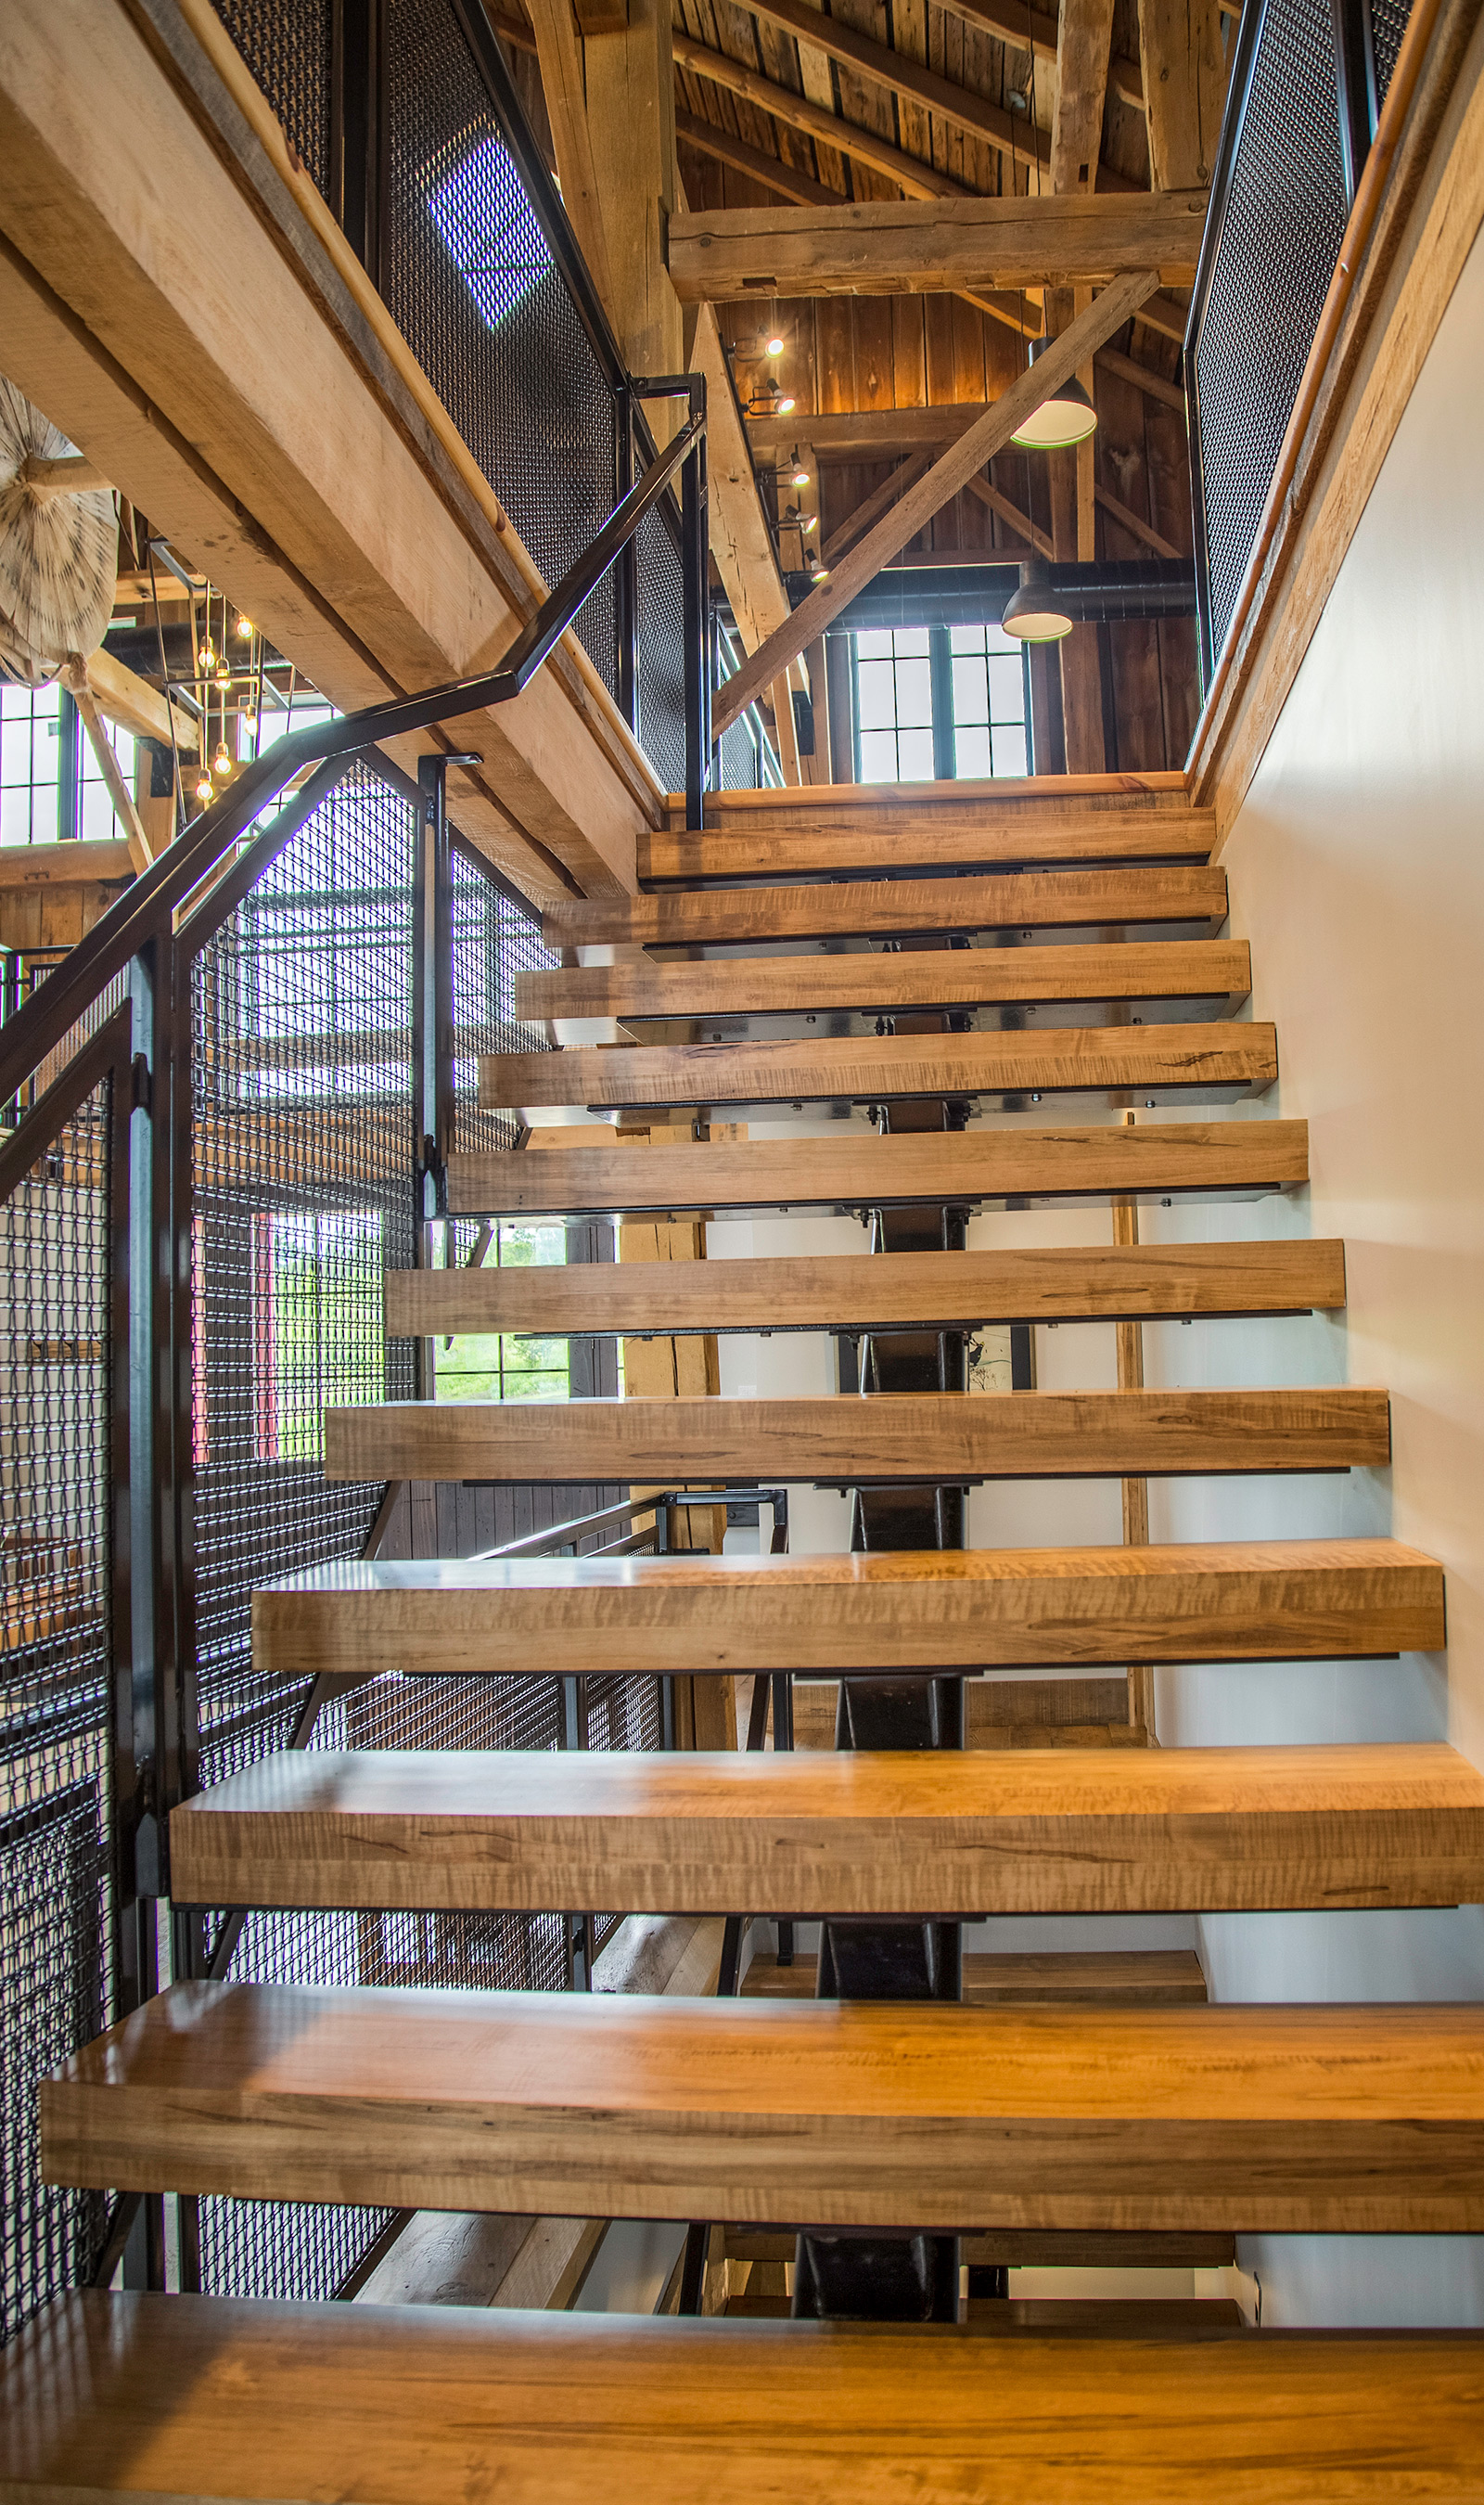 Looking up staircase with wire mesh